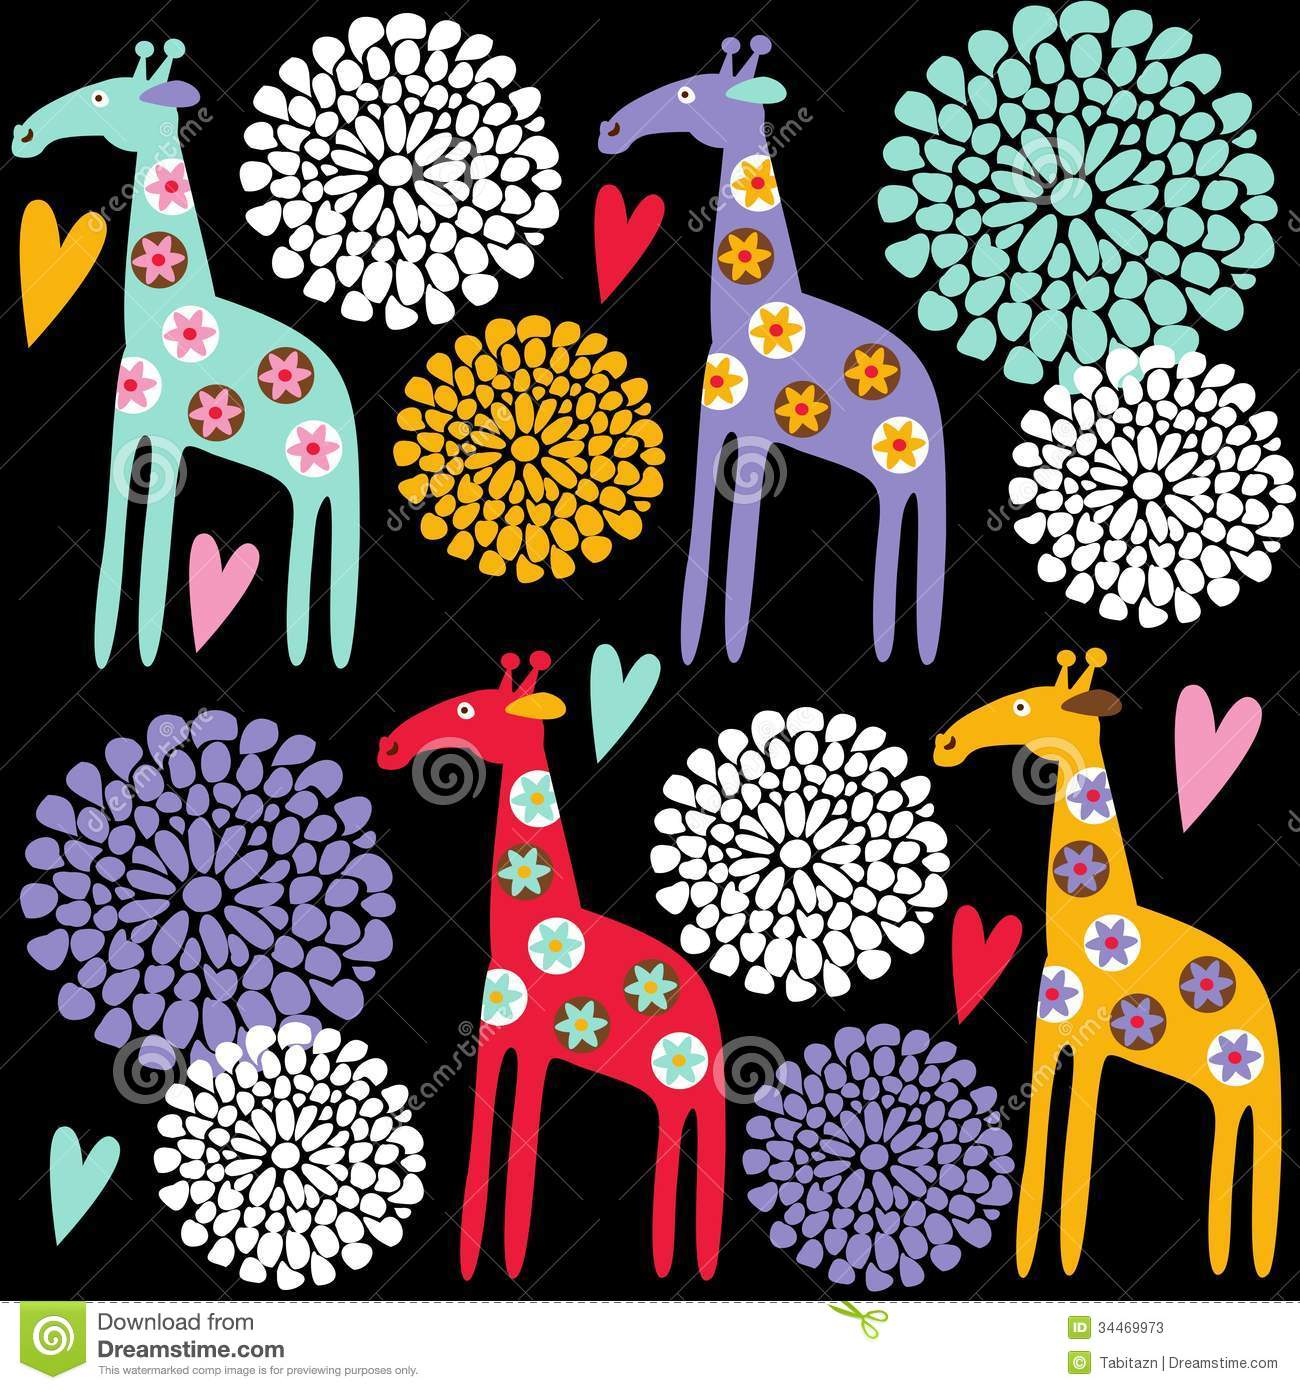 Cool Wallpaper Colorful Giraffe - cute-colorful-giraffe-seamless-pattern-flowers-illustration-background-hearts-fabric-34469973  2018_97142 .jpg